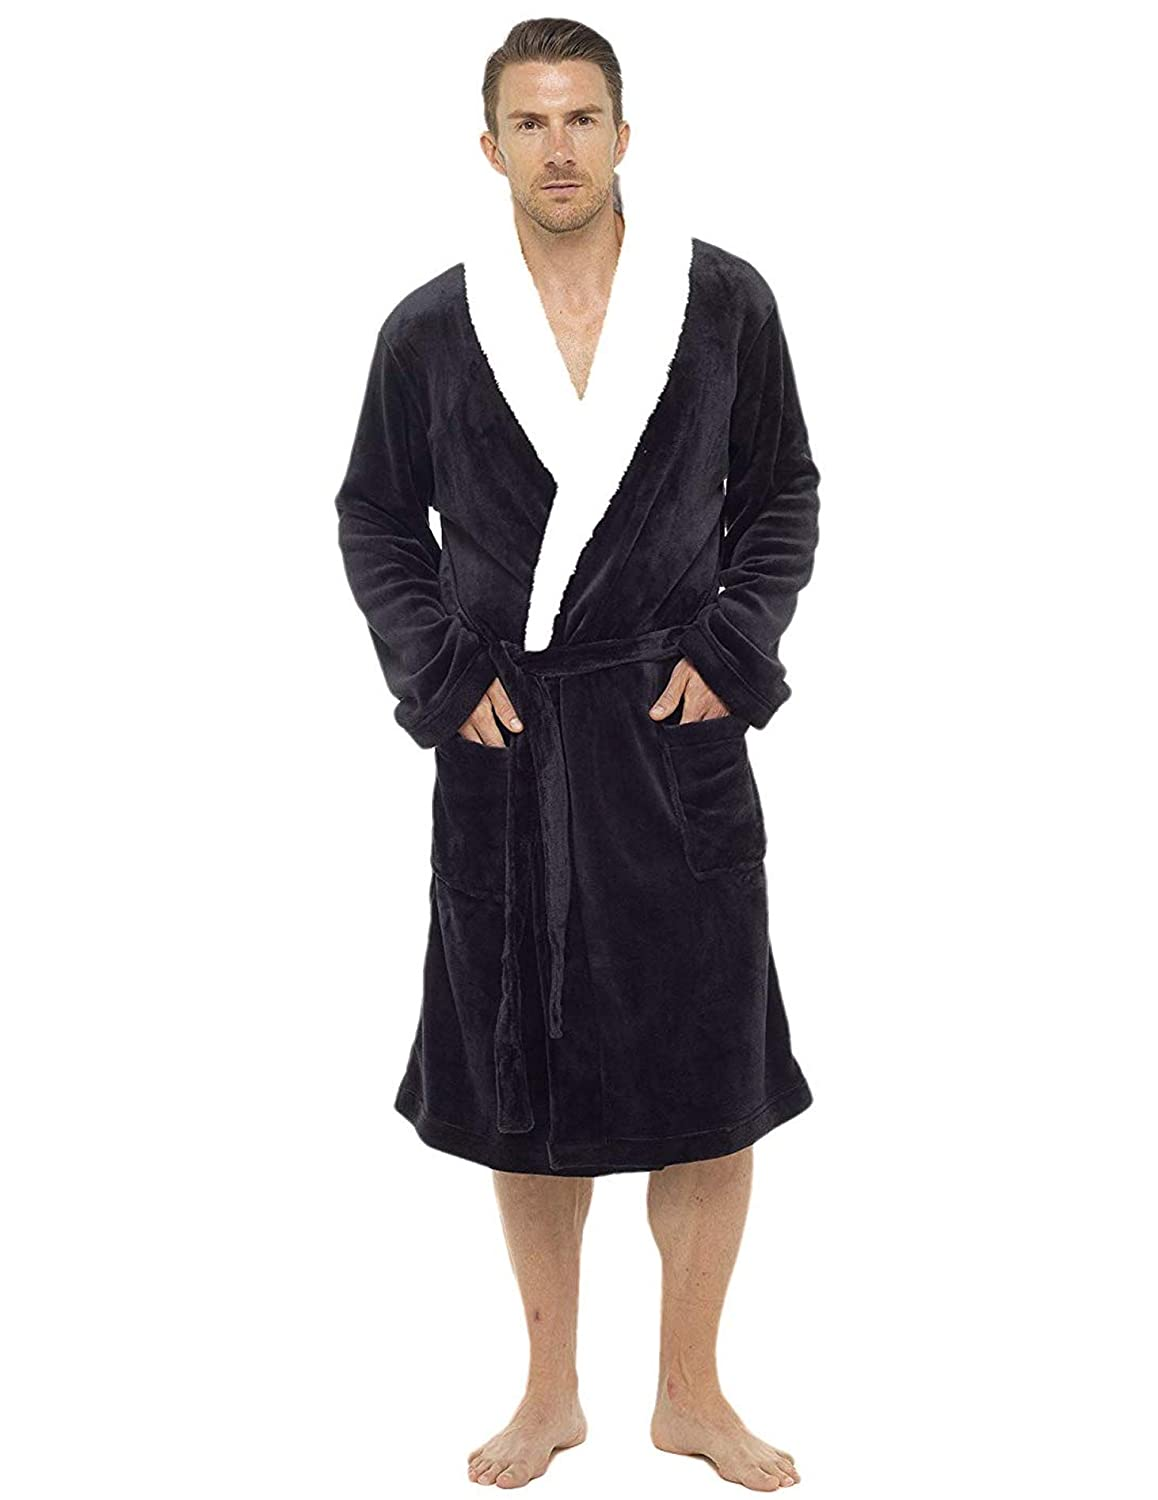 e47dc0dac6 Mens Dressing Gown Luxury Super Soft Mens Fleece Robe with Hood Gowns  Bathrobe Warm and Cozy...  Amazon.co.uk  Clothing